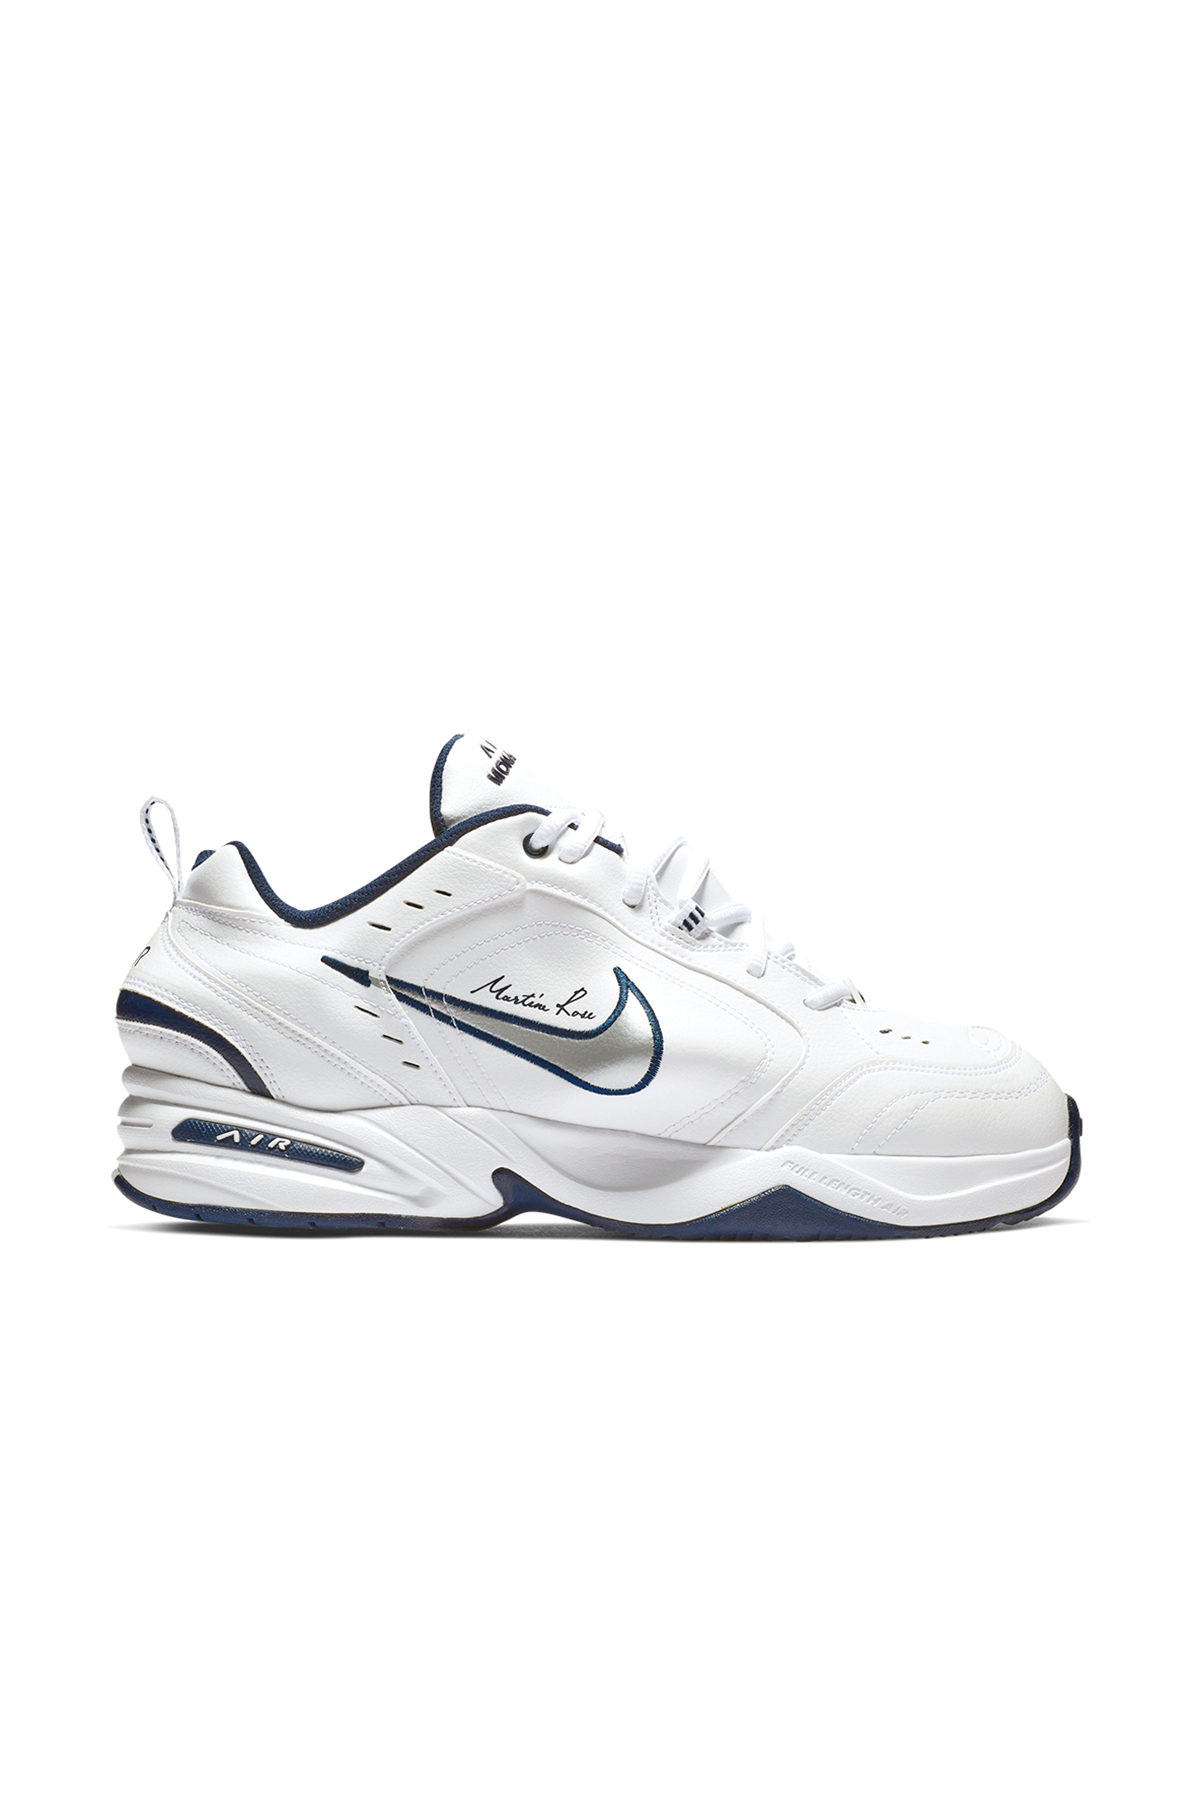 new style 6fbbe a9f0d Nike Air Monarch IV х Martine Rose Sneakers - KM20 Online Store